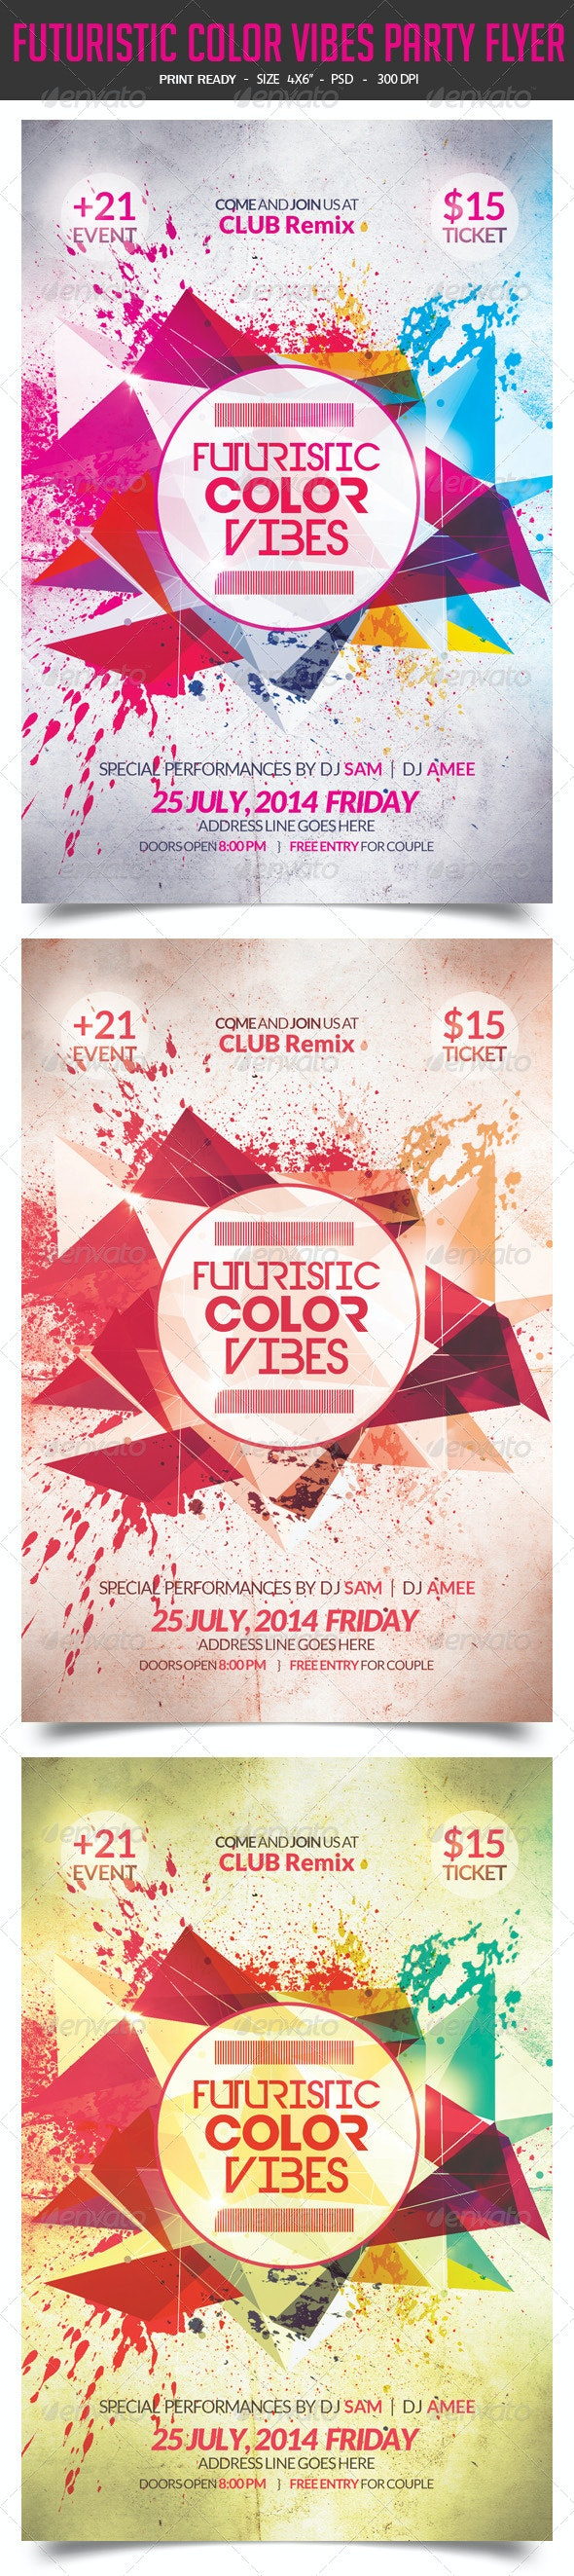 Futuristic Color Vibes Party Flyer  - Clubs & Parties Events